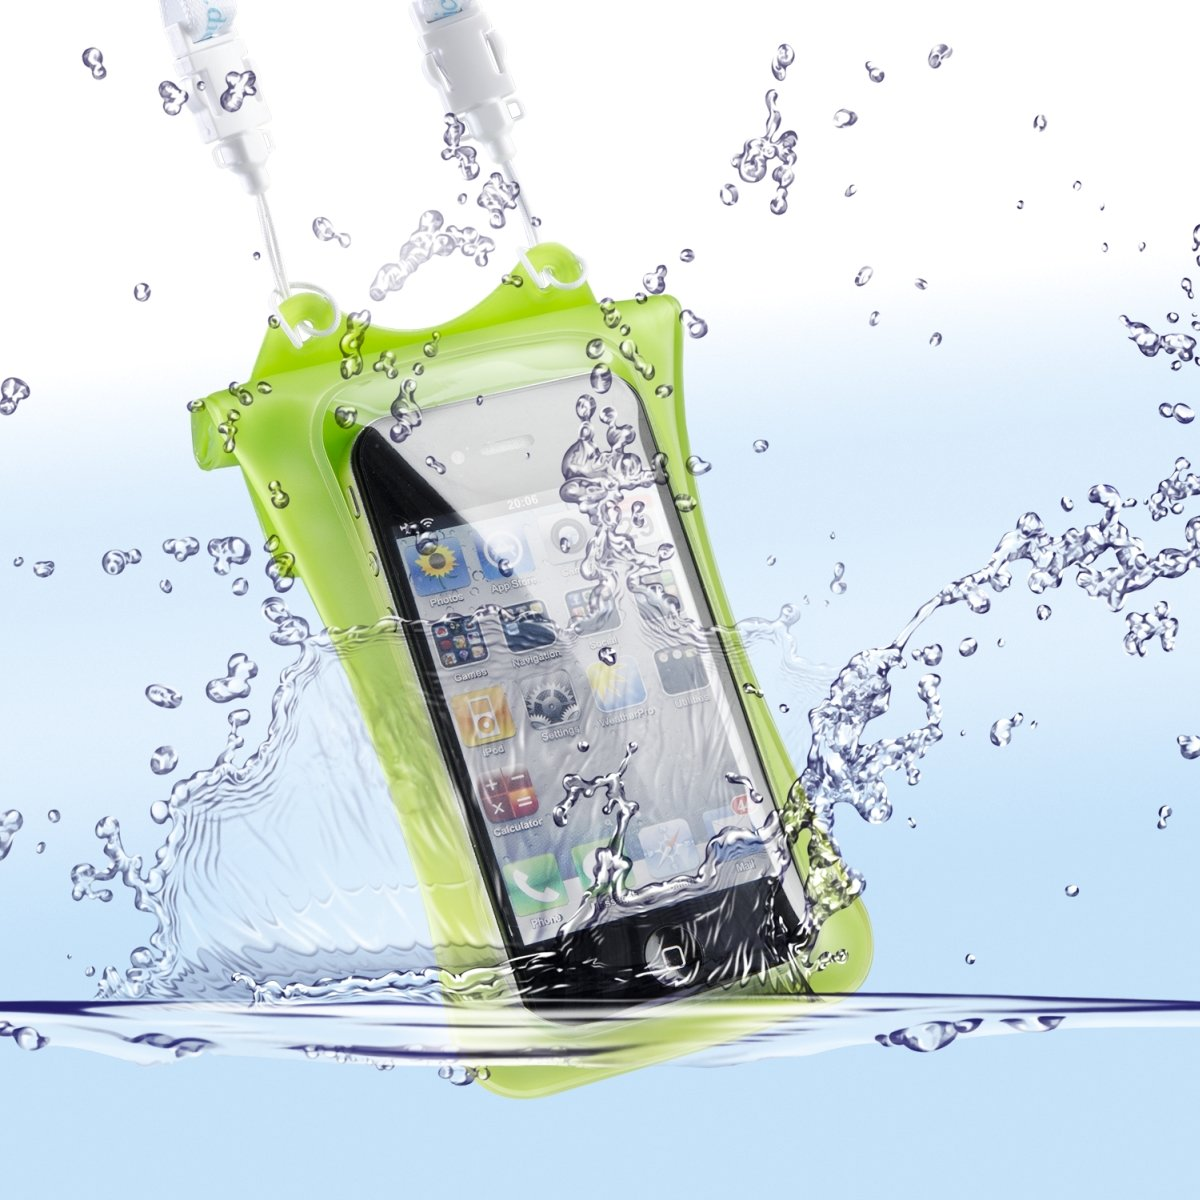 Dicapac USA Inc. WPi10Green Waterproof Case for iPhone  1 Pack  Retail Packaging  Green